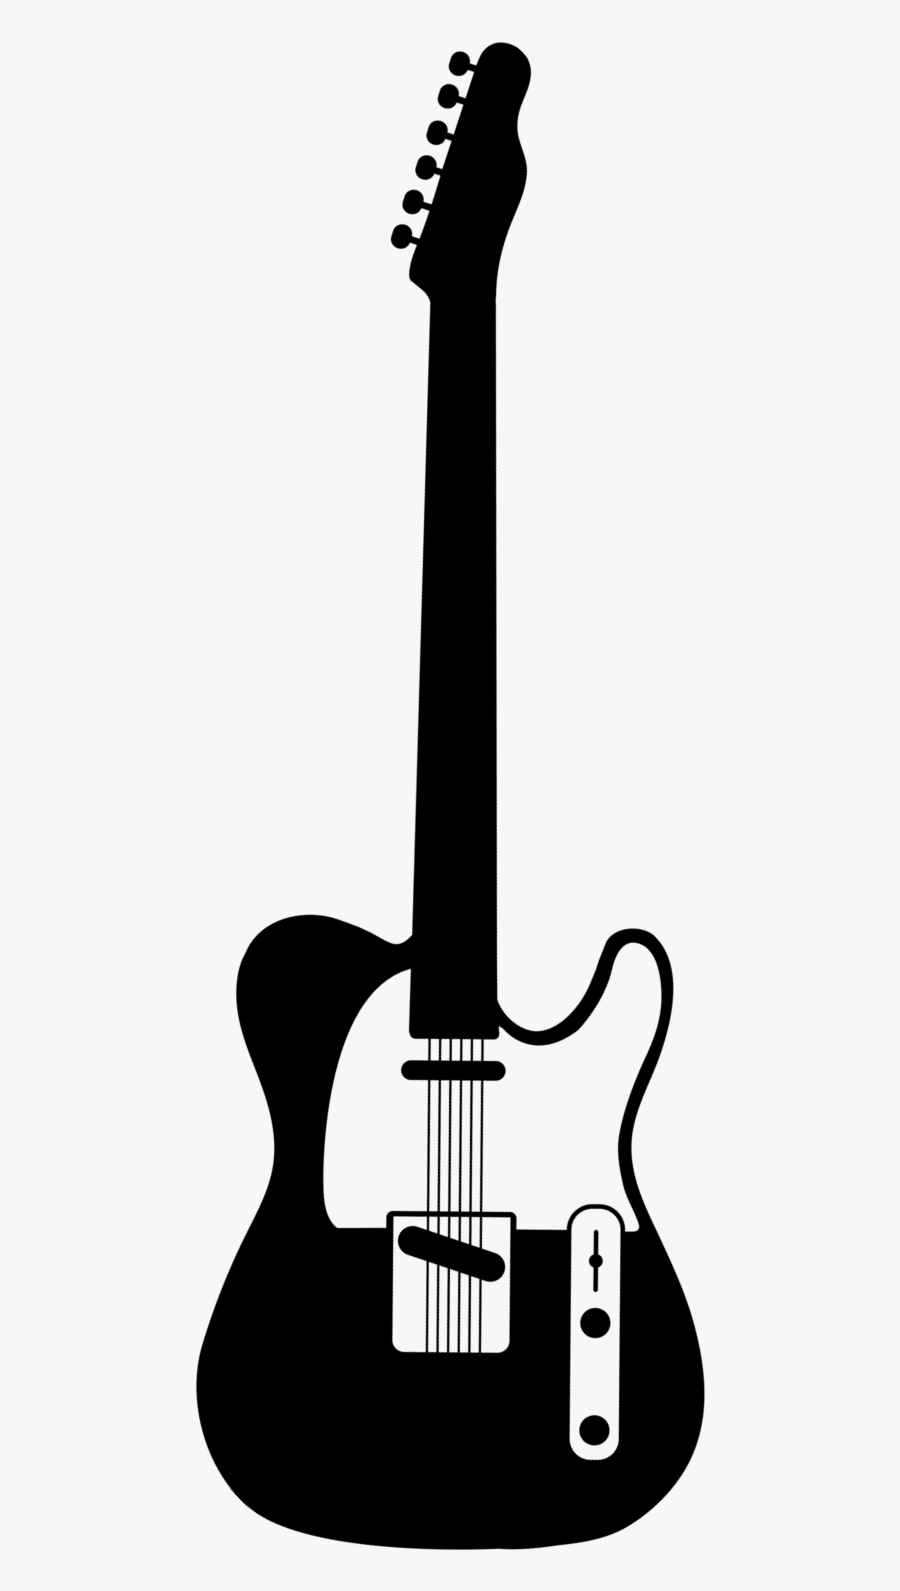 Music Lessons In Newcastle Electric Guitar Silhouette Free Transparent Clipart Clipartkey Guitar silhouette illustrations & vectors. newcastle electric guitar silhouette